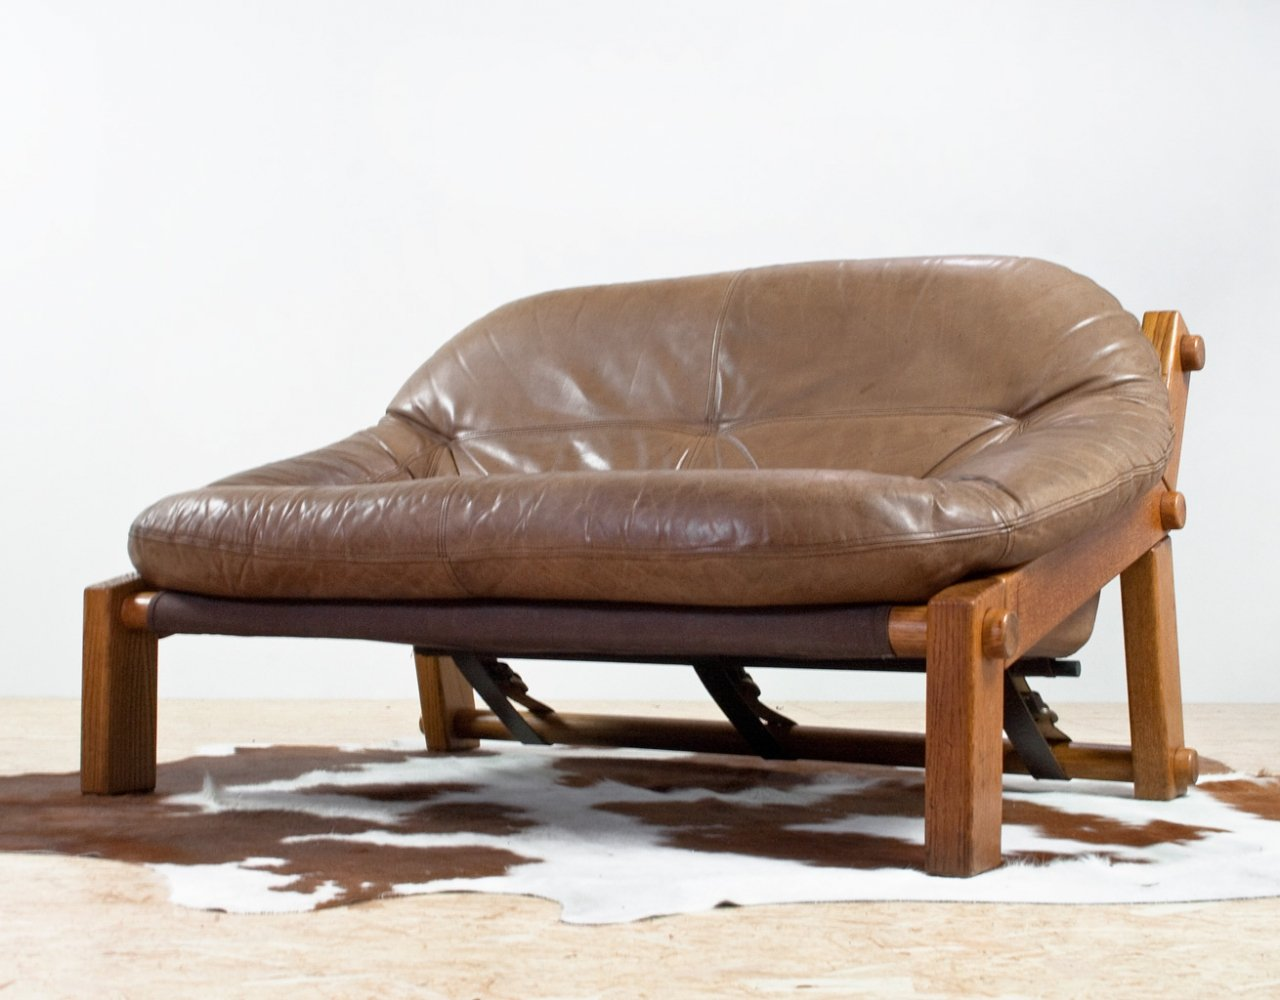 Brutalist sofa in pine & leather by Gerard van den Berg for Montis, 1970s